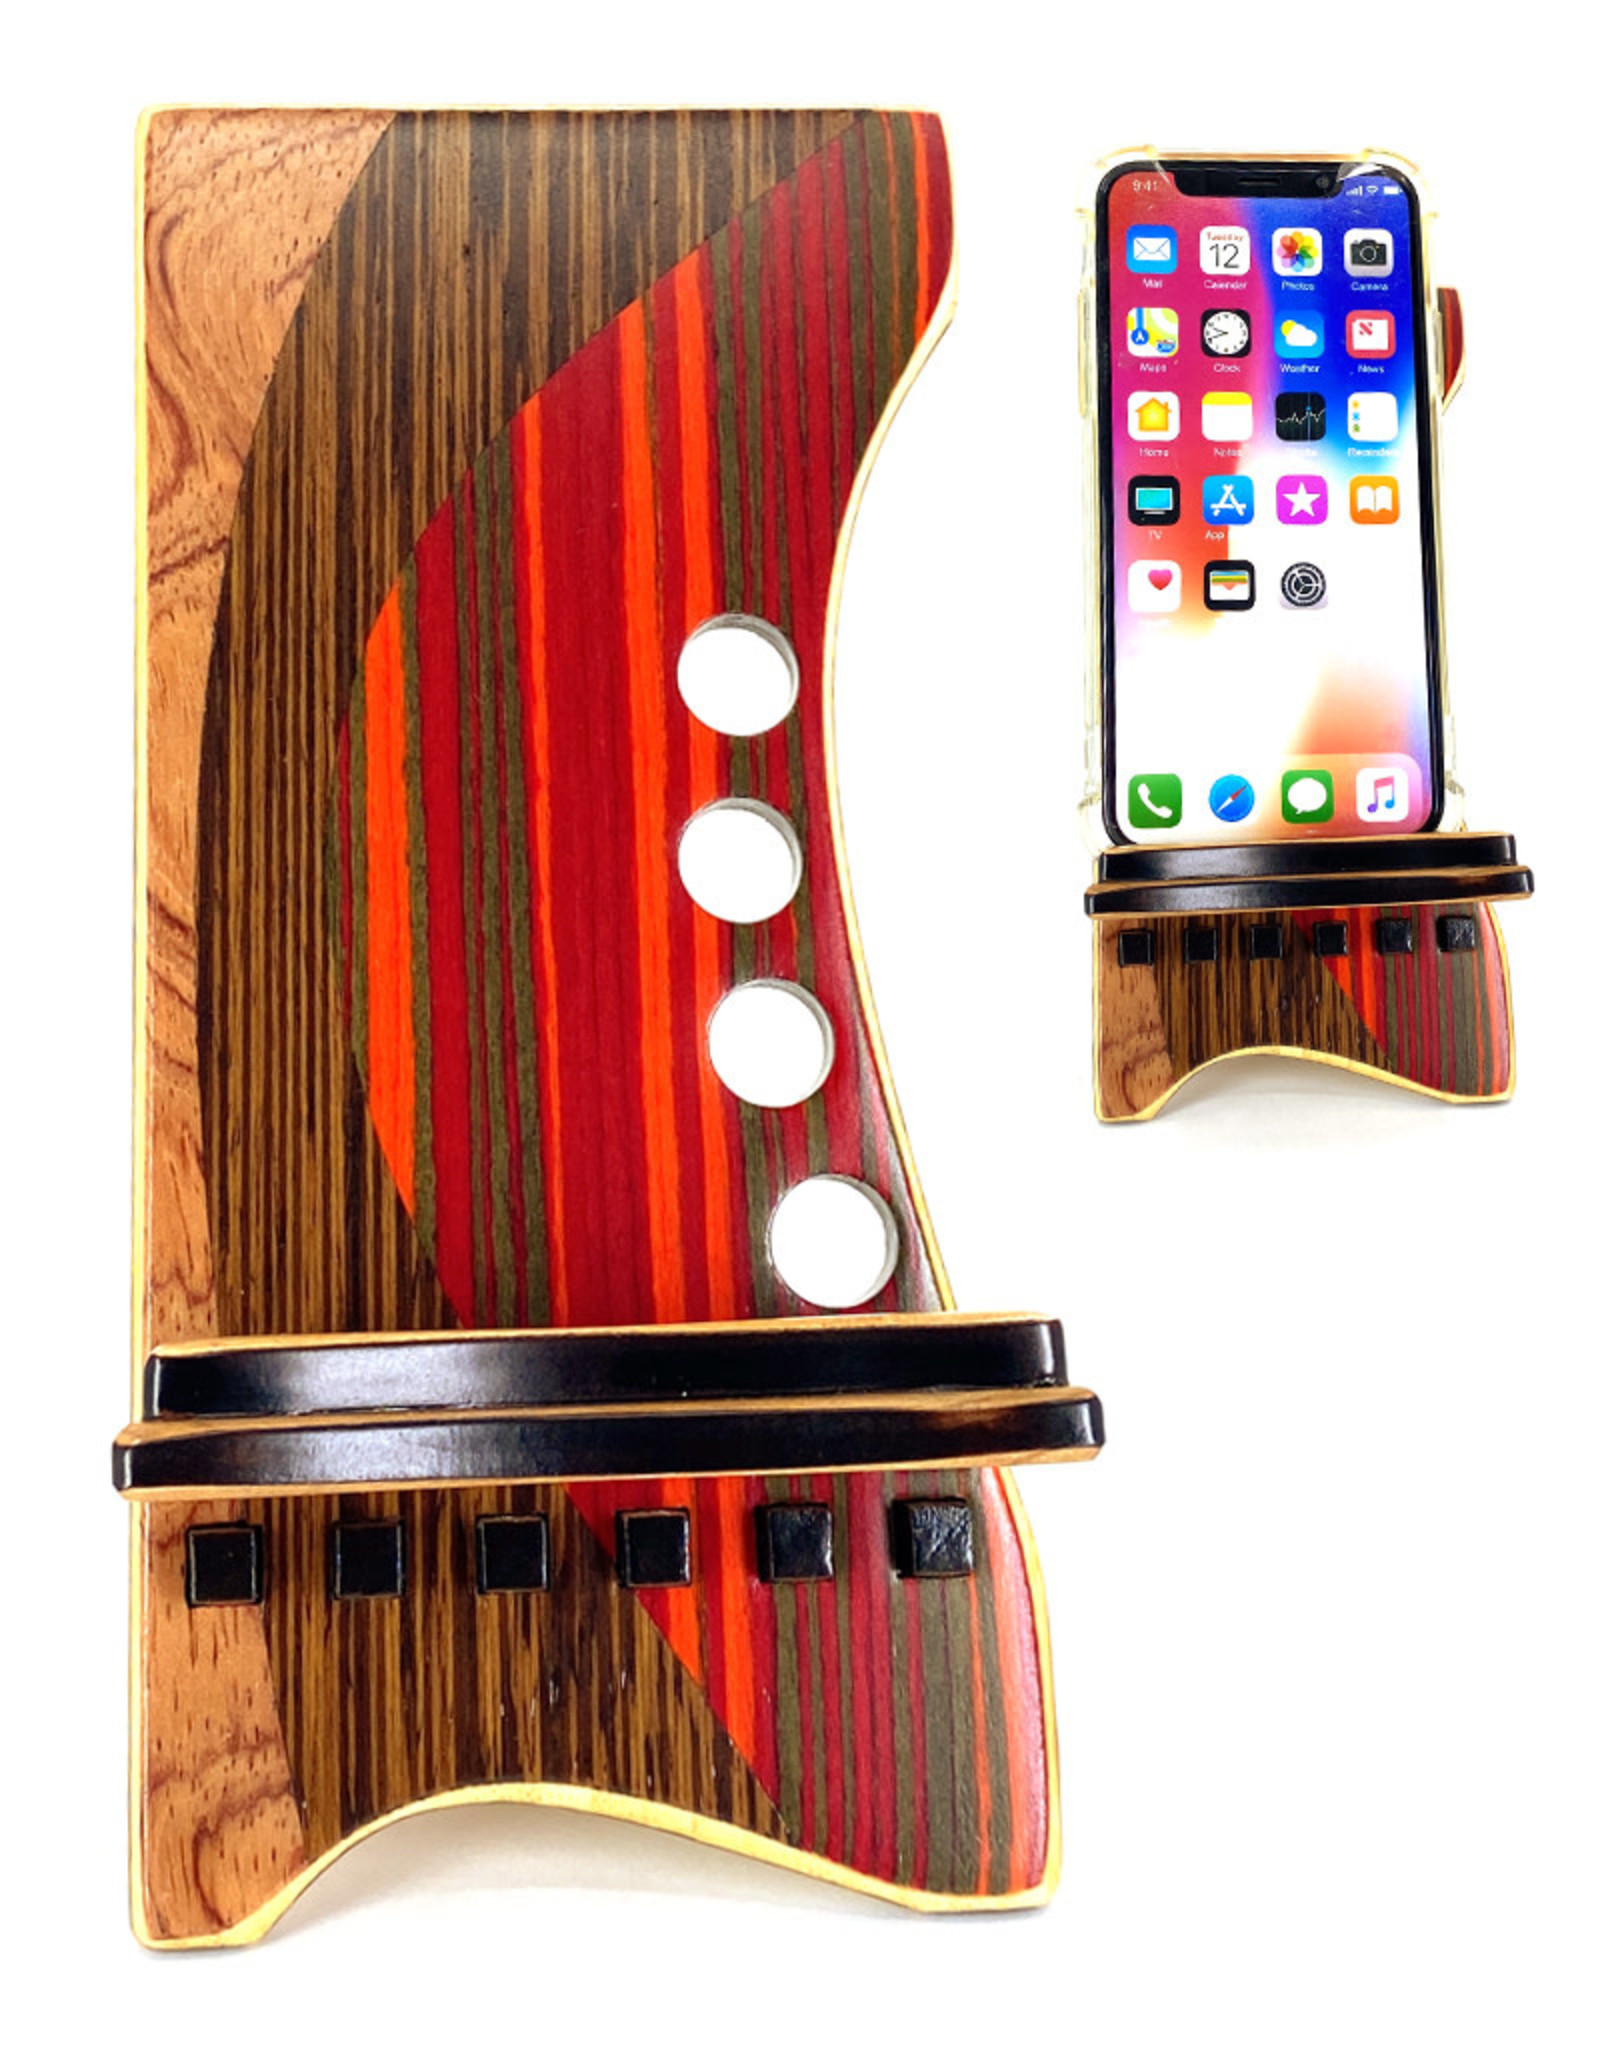 LOST ART WOODWORKS RED STRIPED V MARQUETRY INLAID PHONE STAND